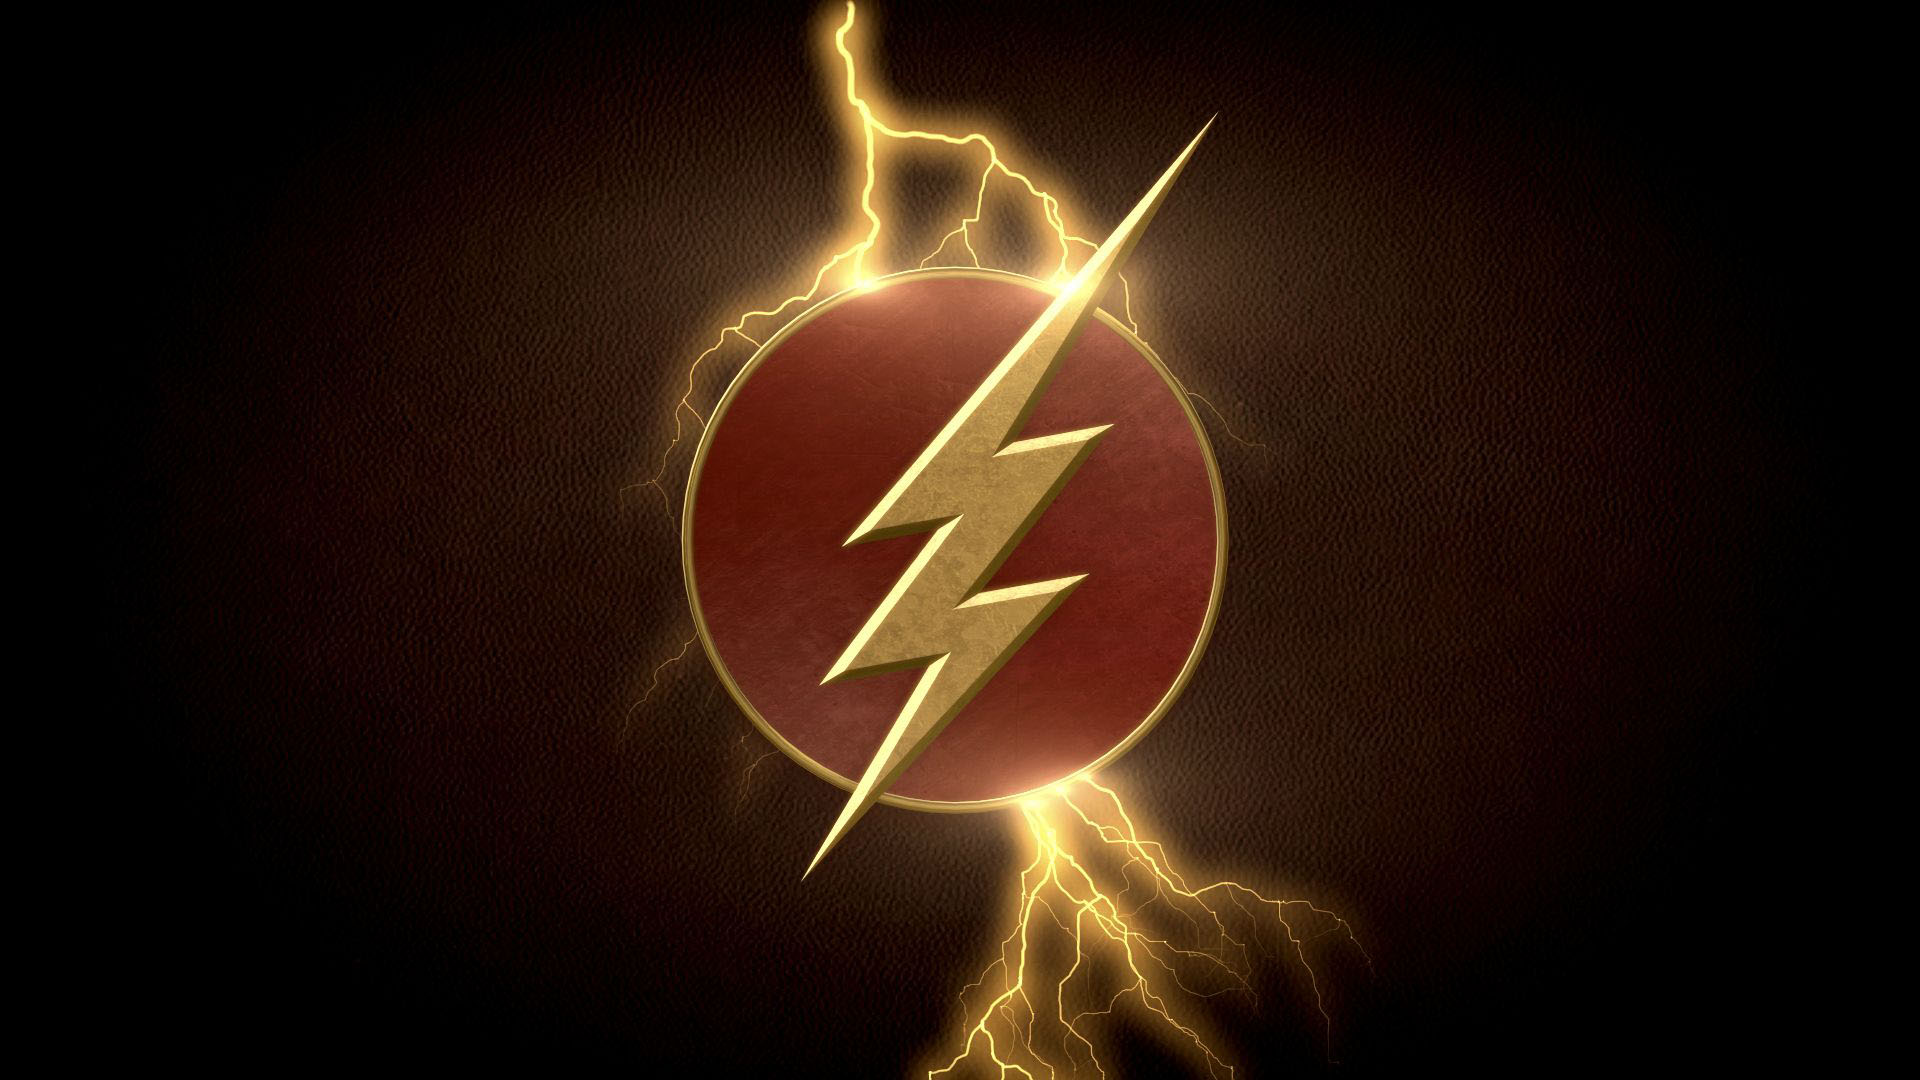 Flash Wallpaper Download